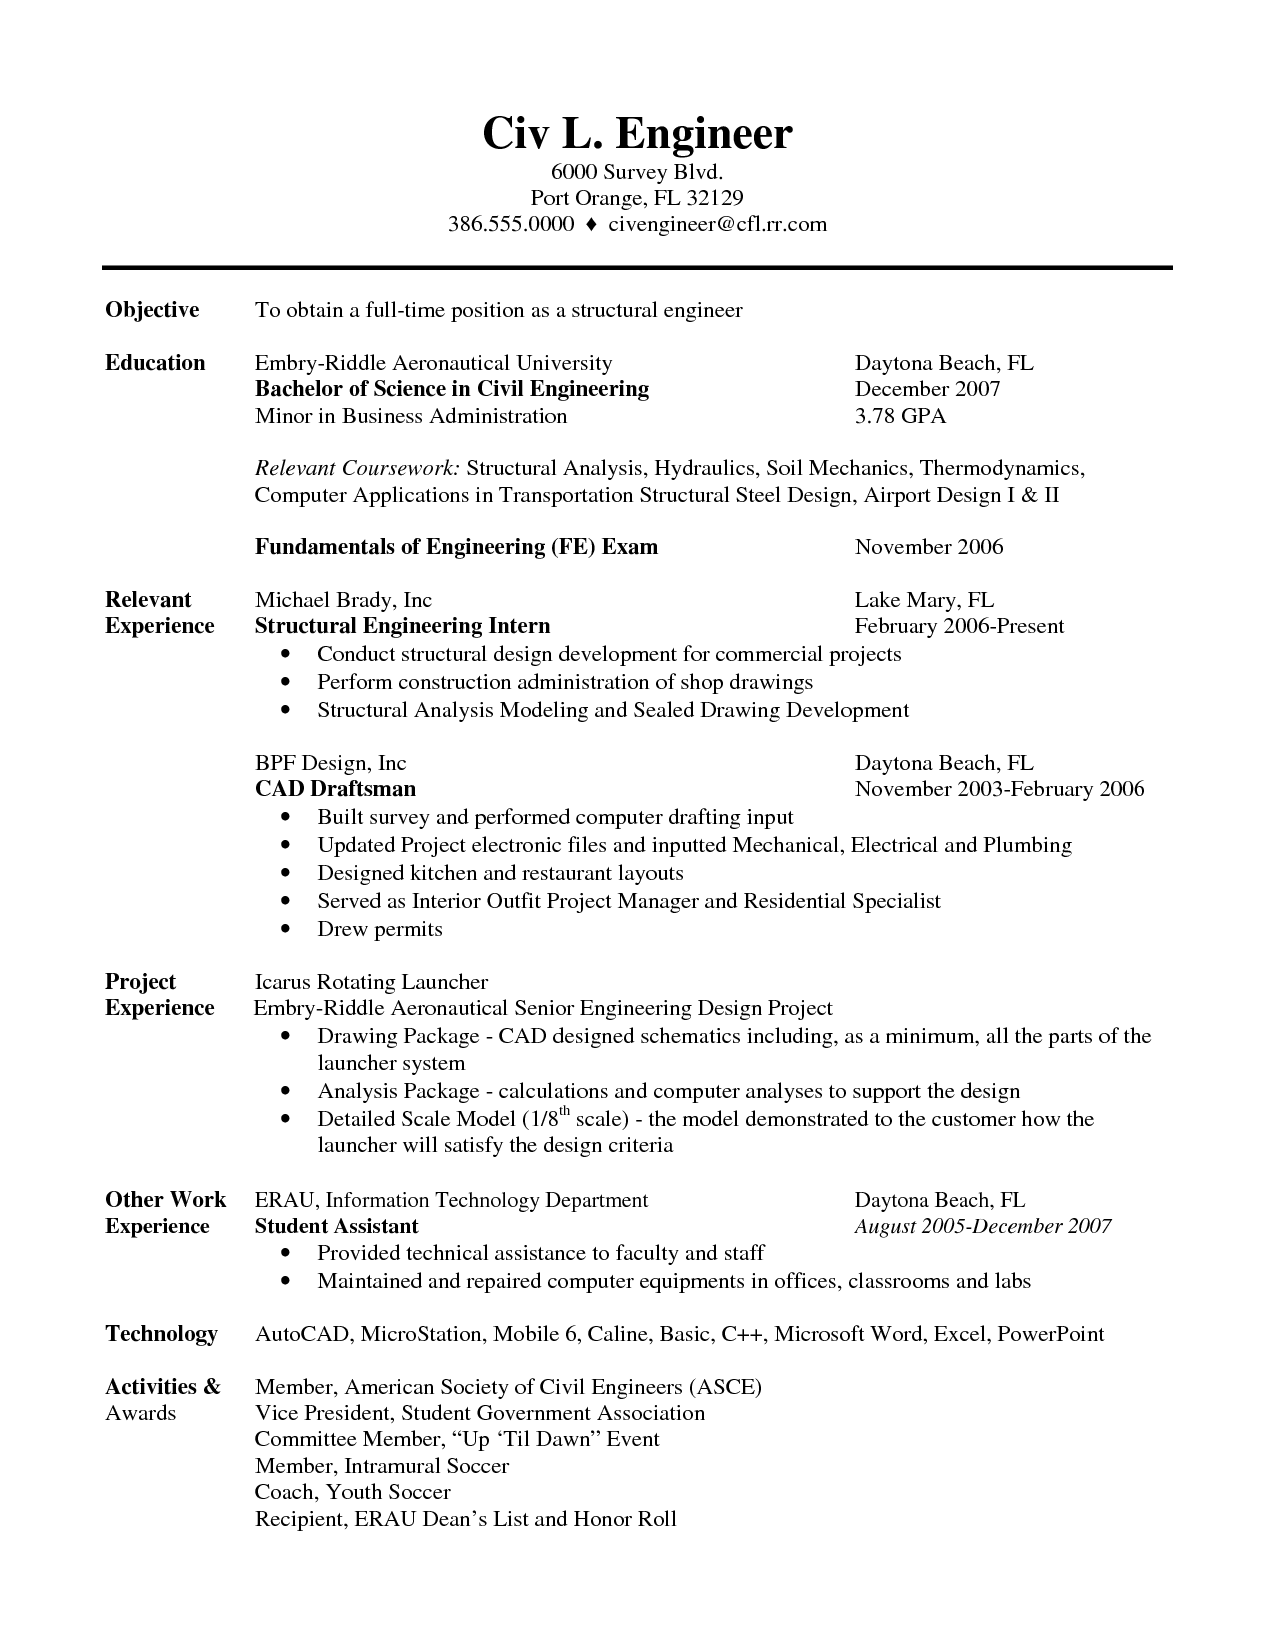 Resume Resume Format Civil Engineer resume sample for civil engineer technician examples engineering jobs resume